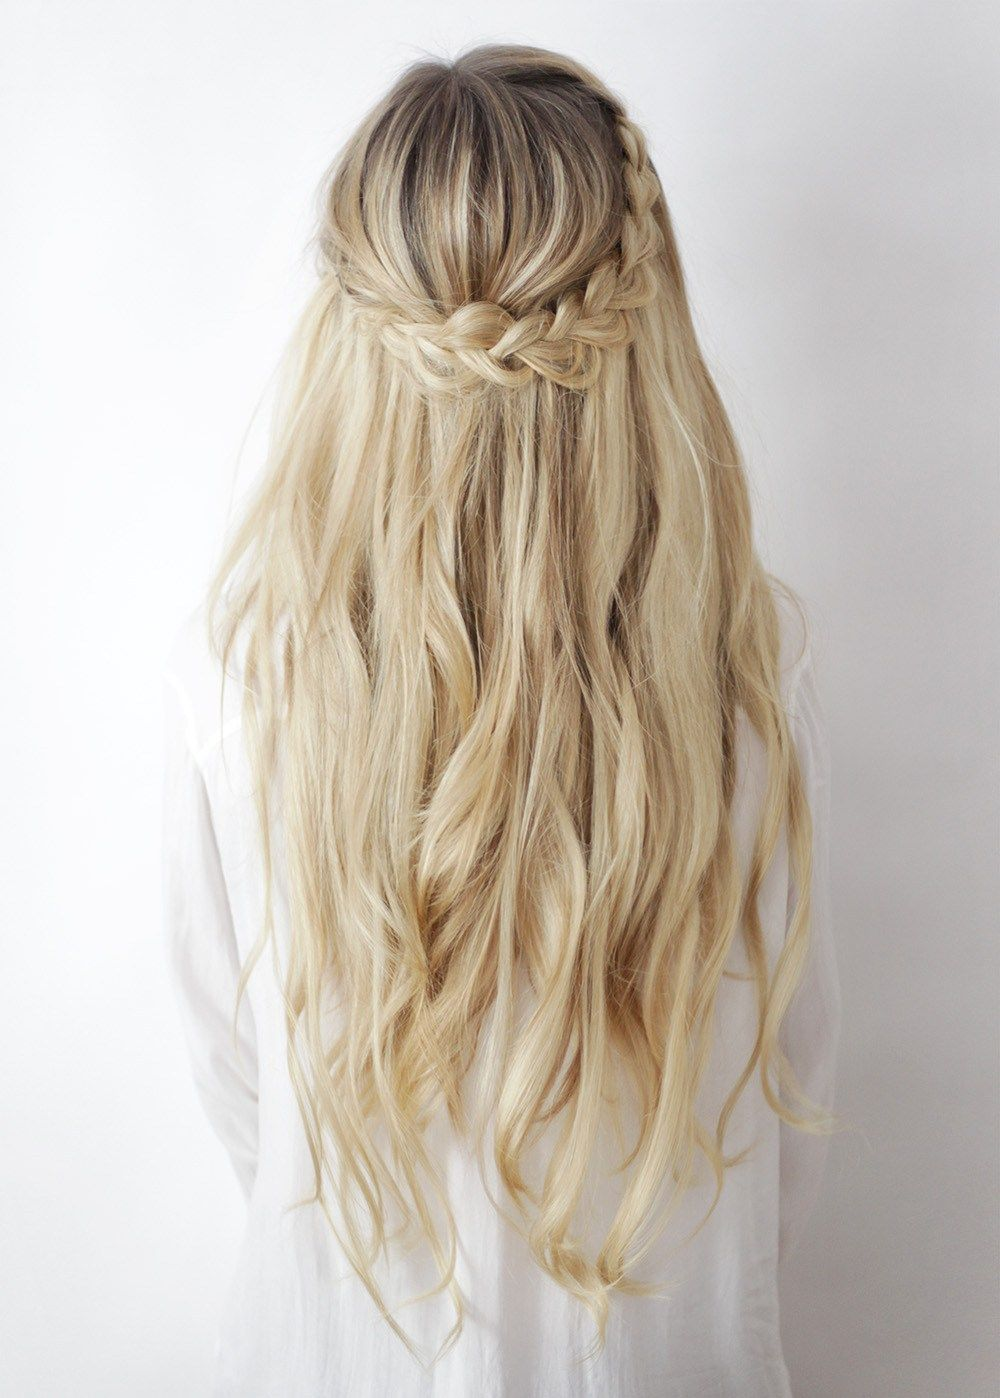 Half up boho braids primp pinterest hair hair styles and braids